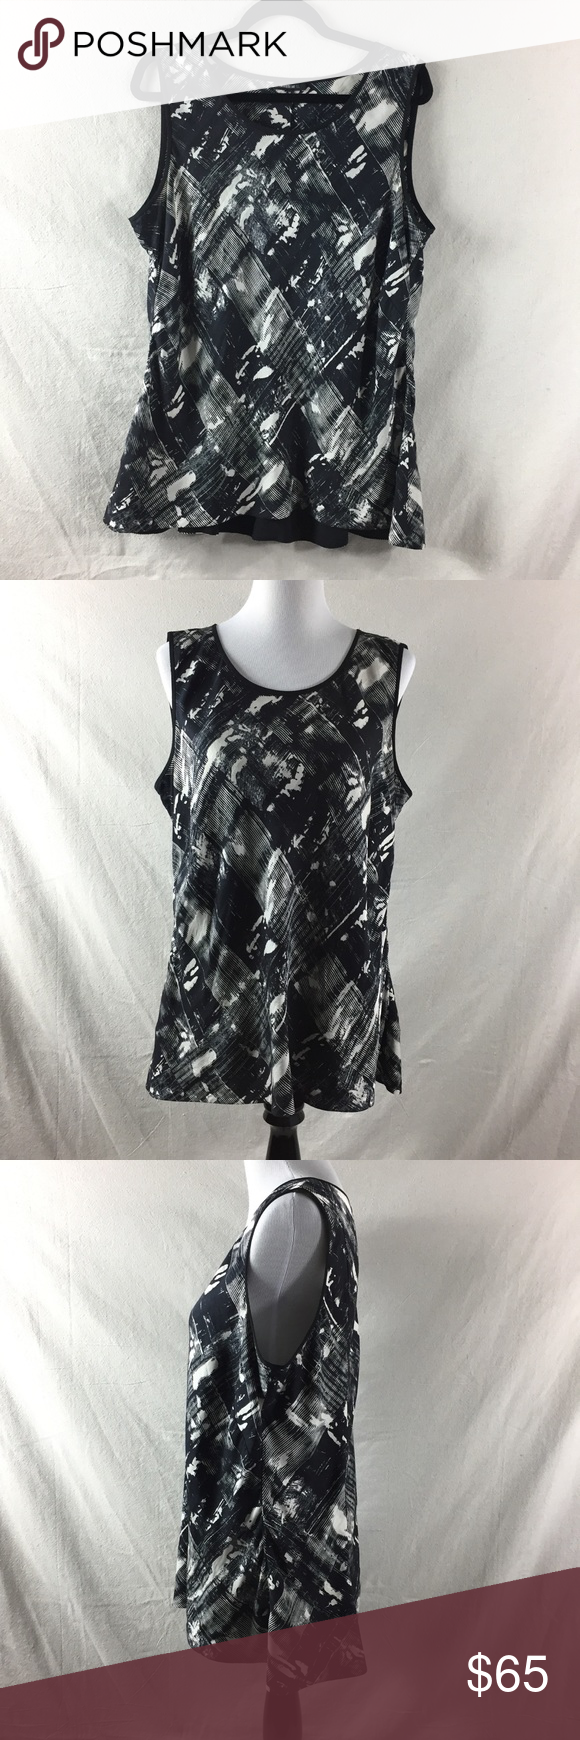 Lafayette 148 Silk Sleeveless Abstract Top Sz 14 New York Black And White Sleeveless Clothes Design